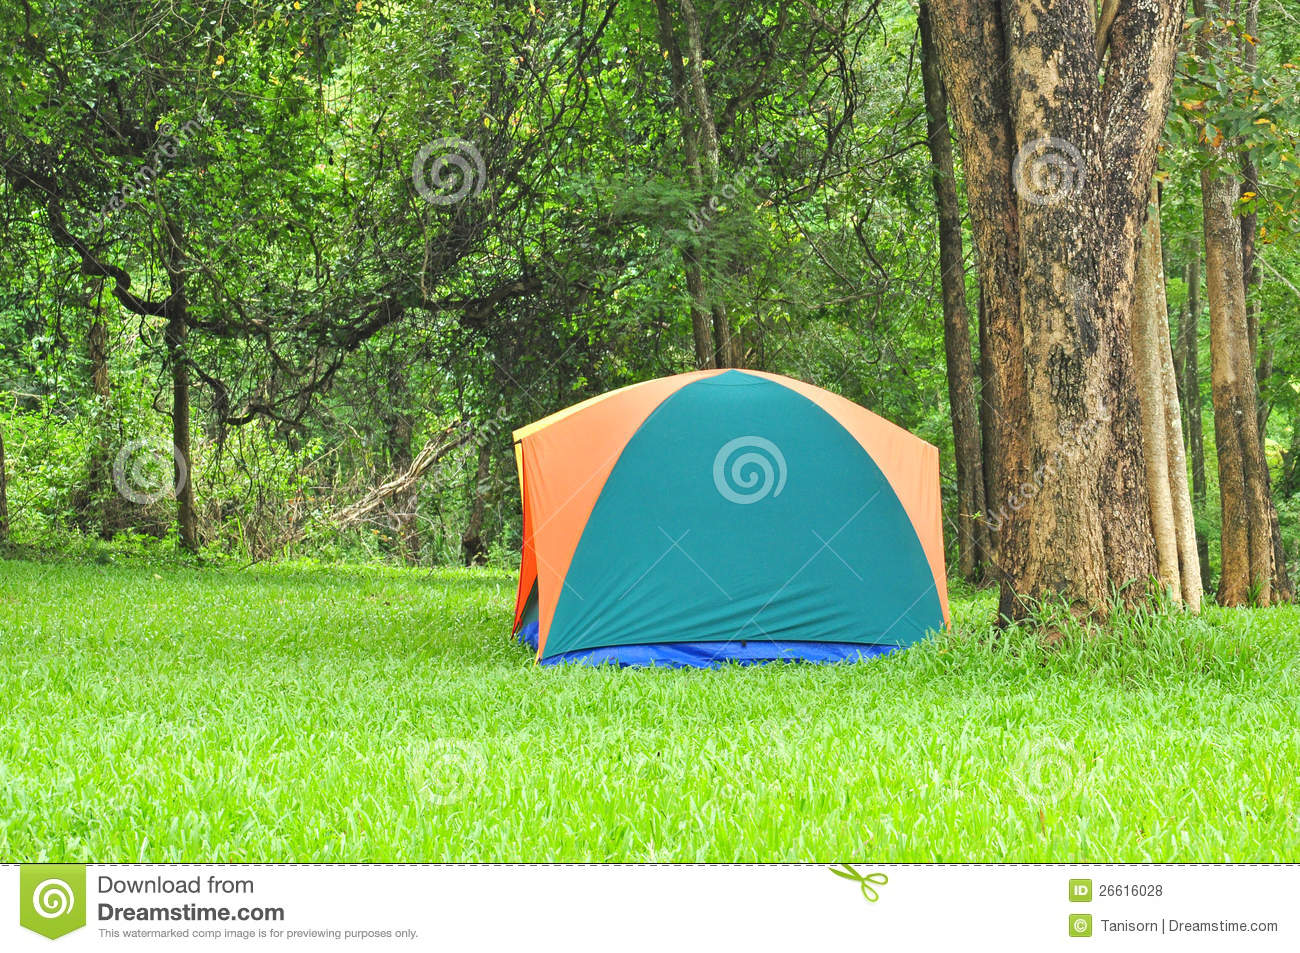 Outdoor Tent, Forest Camsite Royalty Free Stock Photos - Image ...: www.dreamstime.com/royalty-free-stock-photos-outdoor-tent-forest...